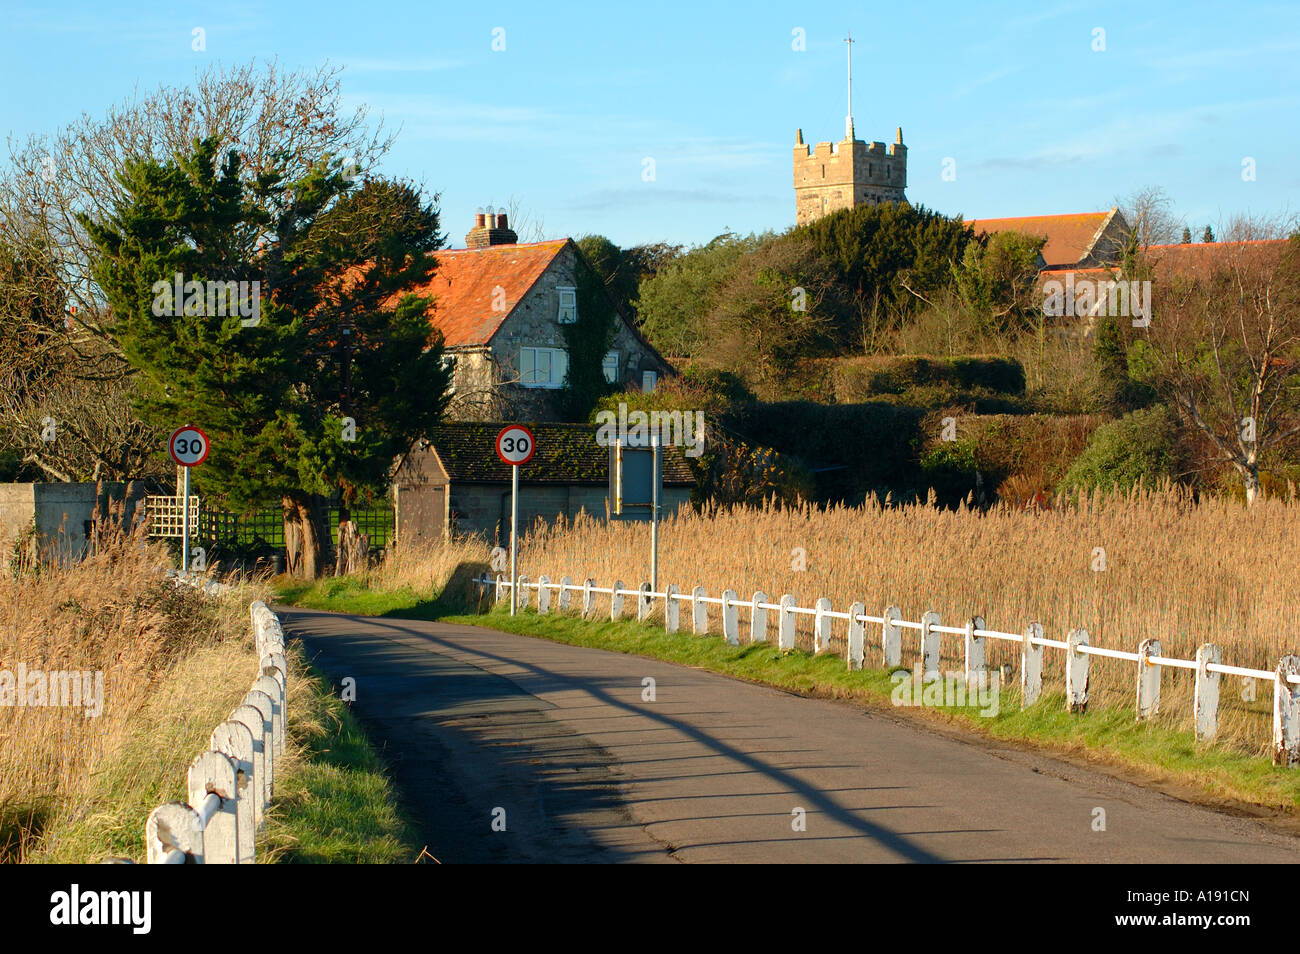 The Causeway, Freshwater, Isle of Wight, England, UK, GB. Stock Photo